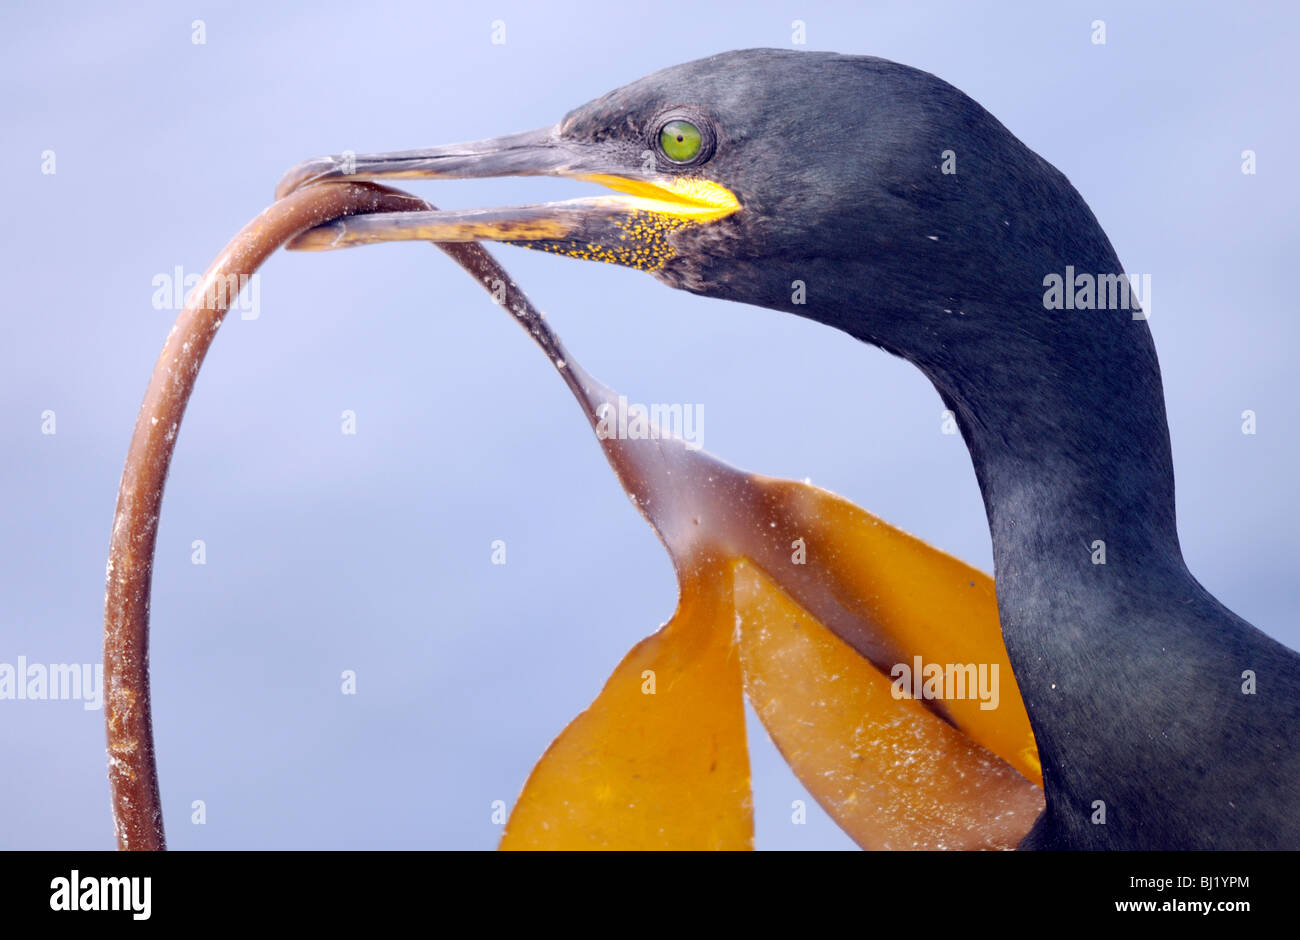 A Shag (Phalacrocorax aristotelis) brings a frond of kelp for its mate to add to their nest. Northumberland, UK. - Stock Image